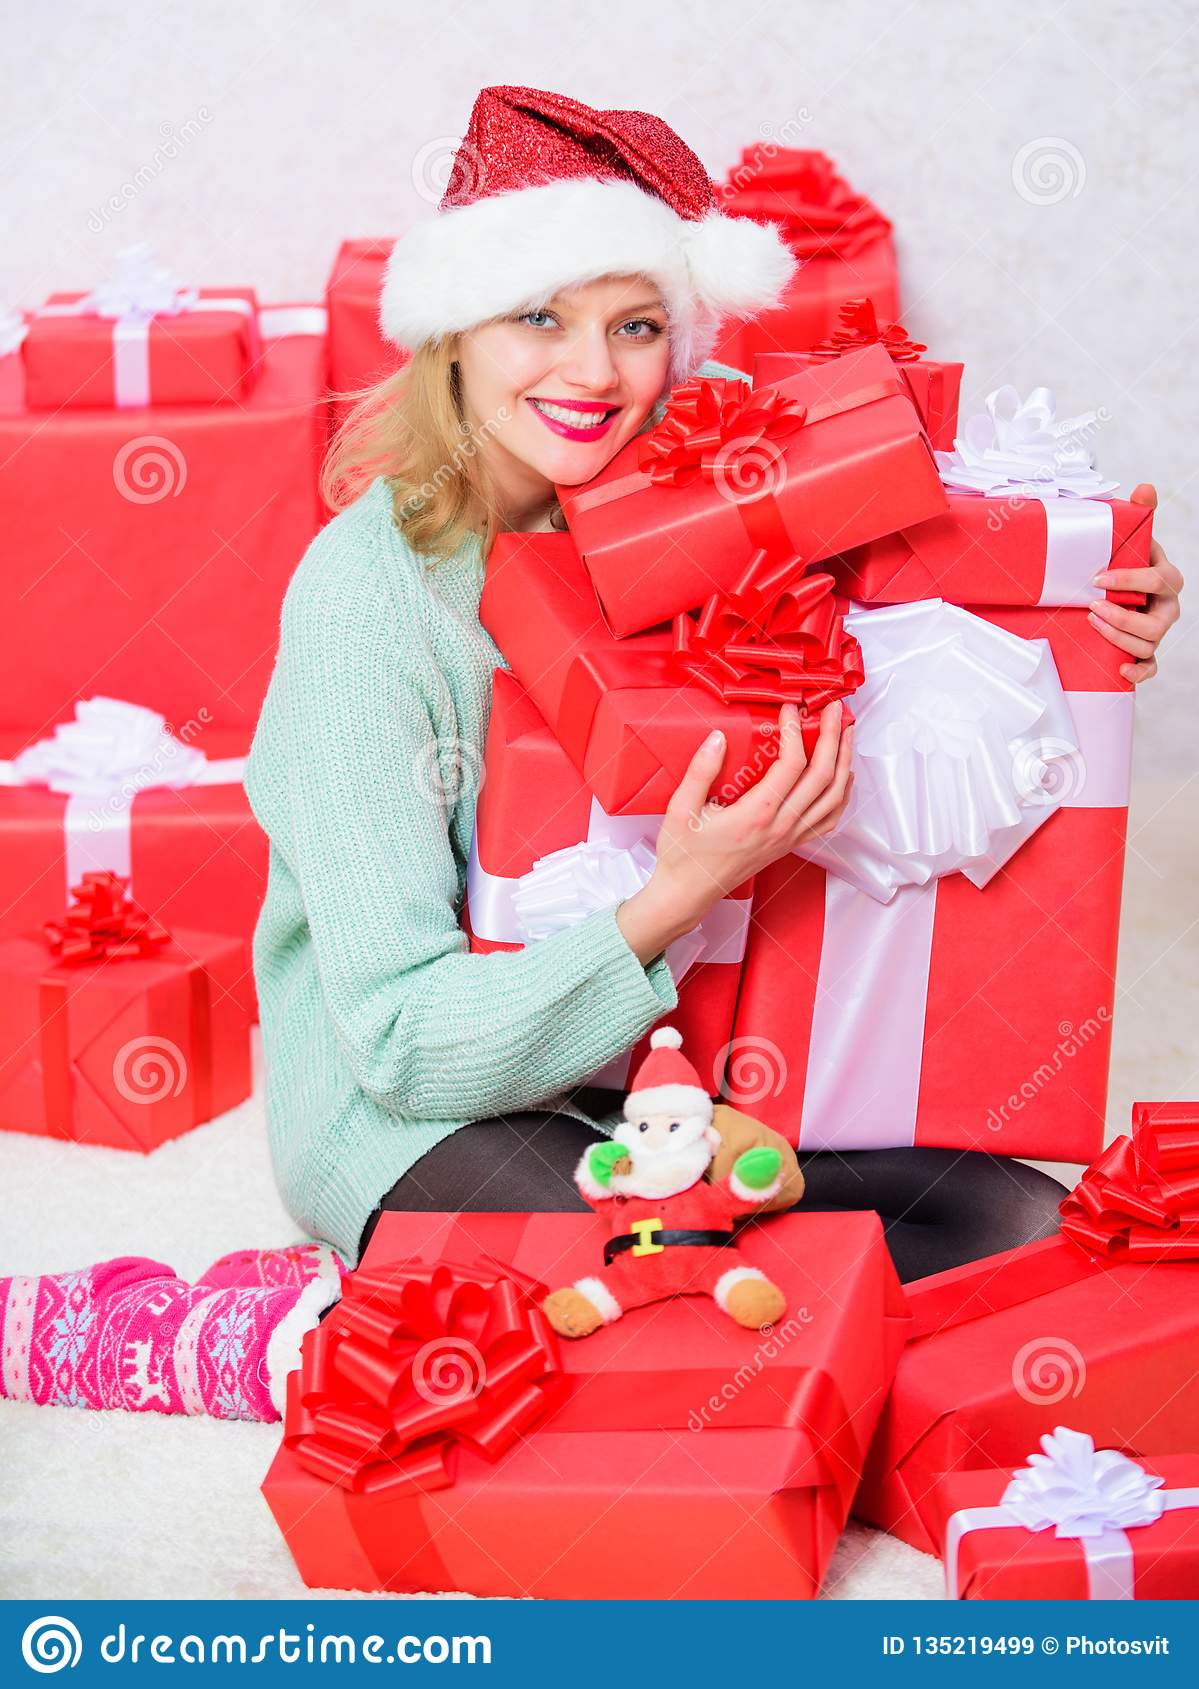 Woman Excited Blonde Hold Gift Box With Bow Perfect Gift For